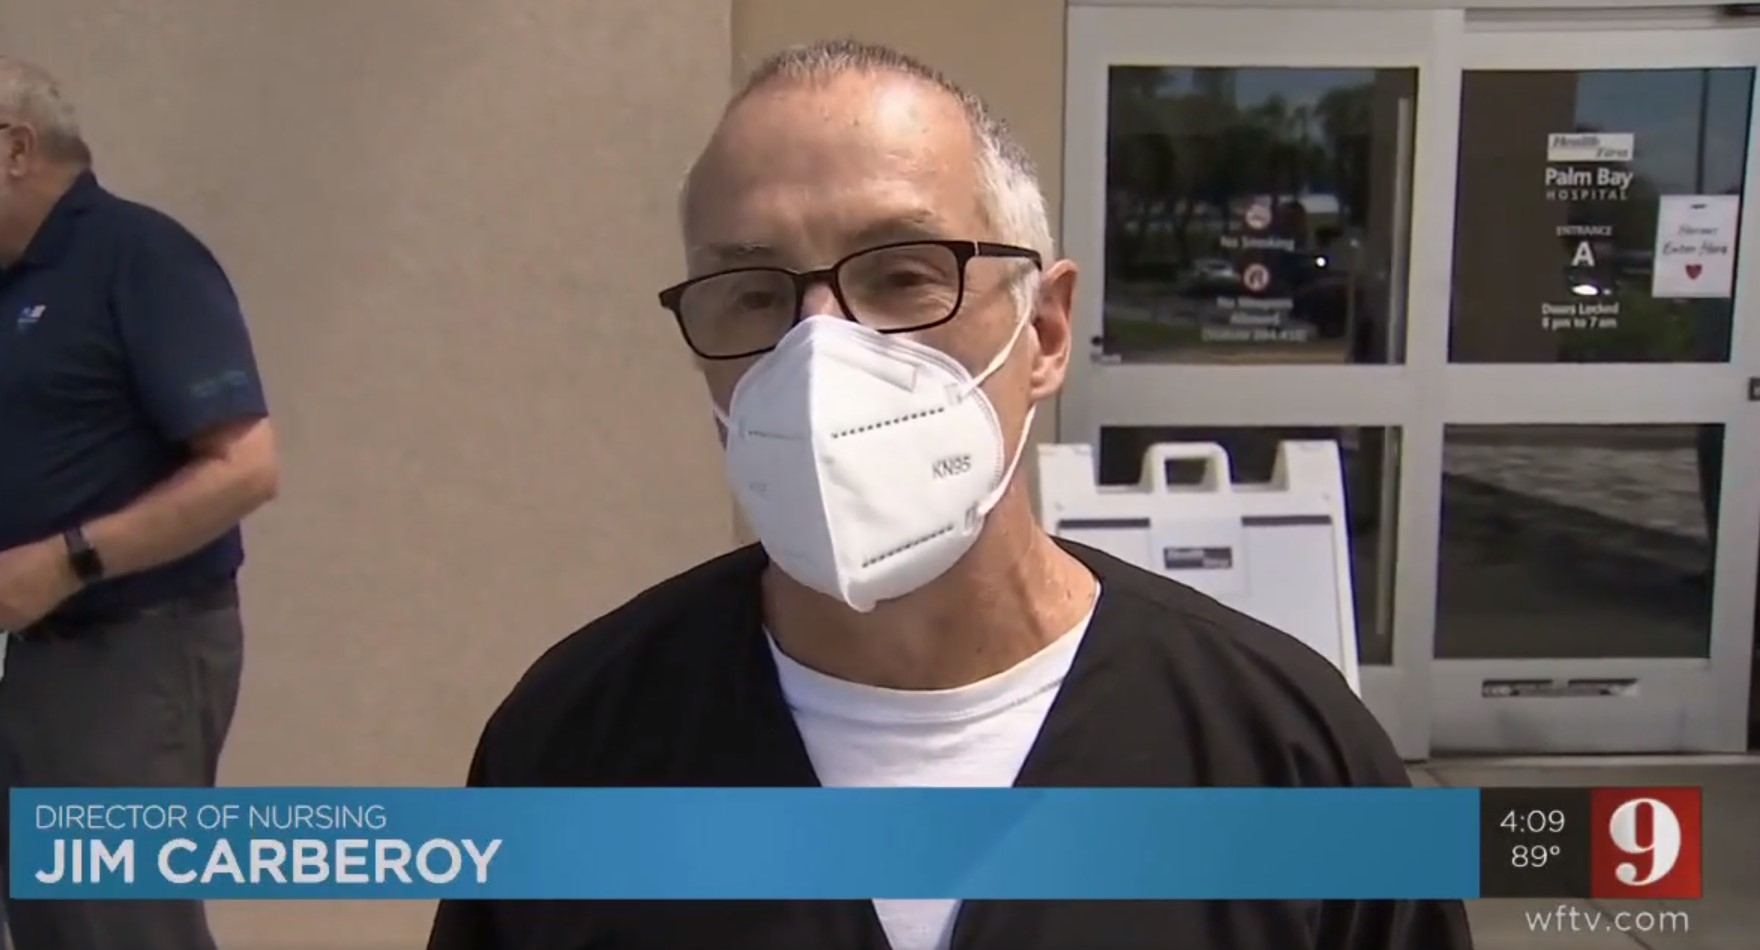 Director of Nursing, Jim Carberoy wearing mask in front of Health First's Palm Bay Hospital Entrance A.